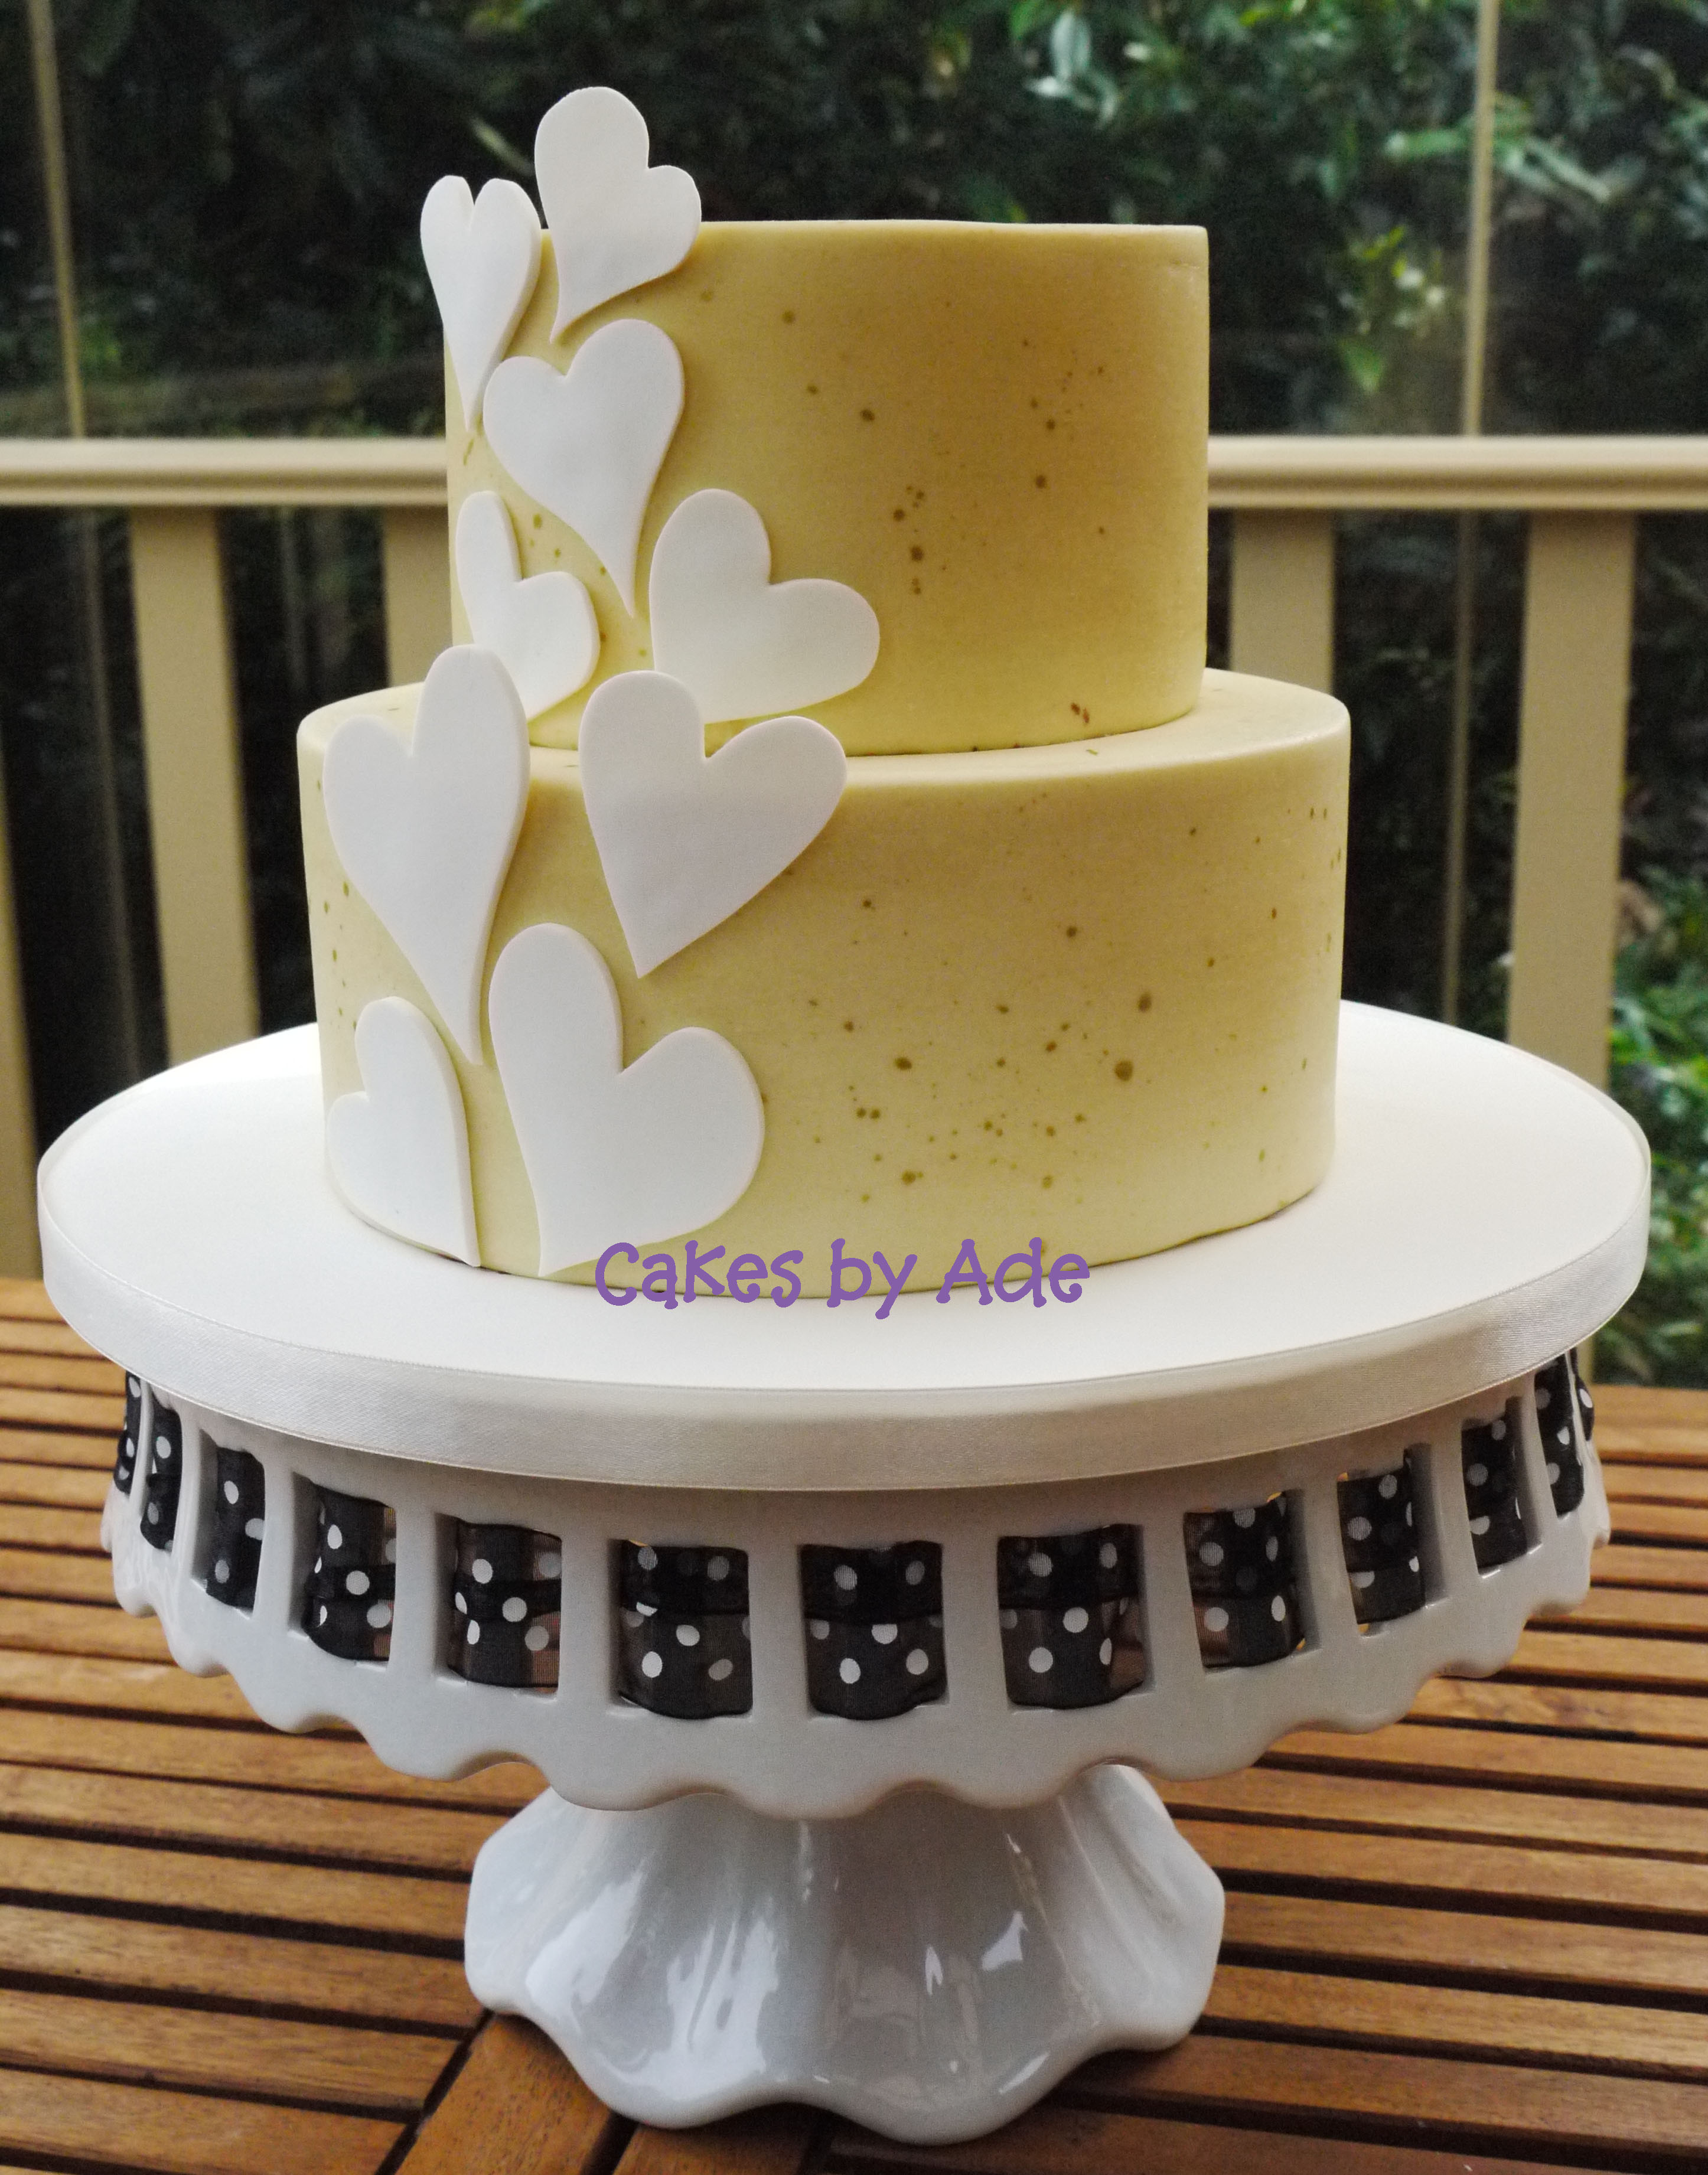 cakes by ade